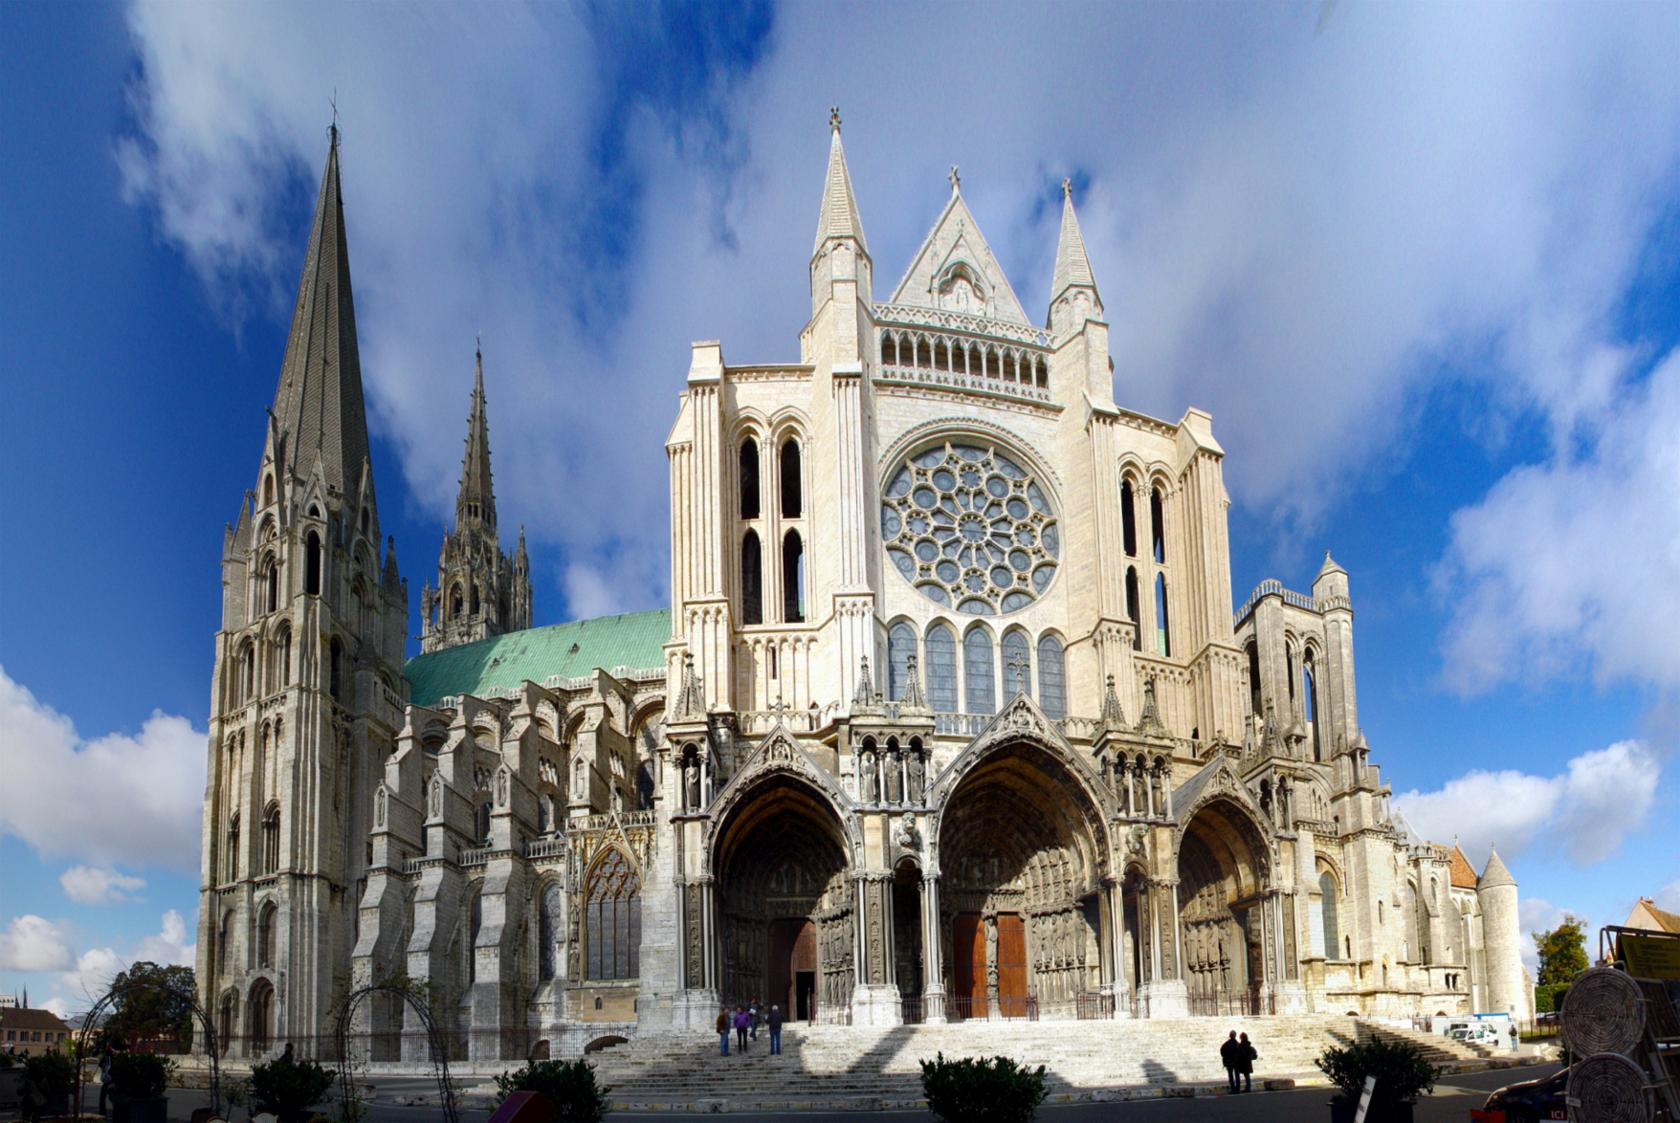 photo Chartres in celebration of 60th anniversary of twinning between Chichester and Chartres